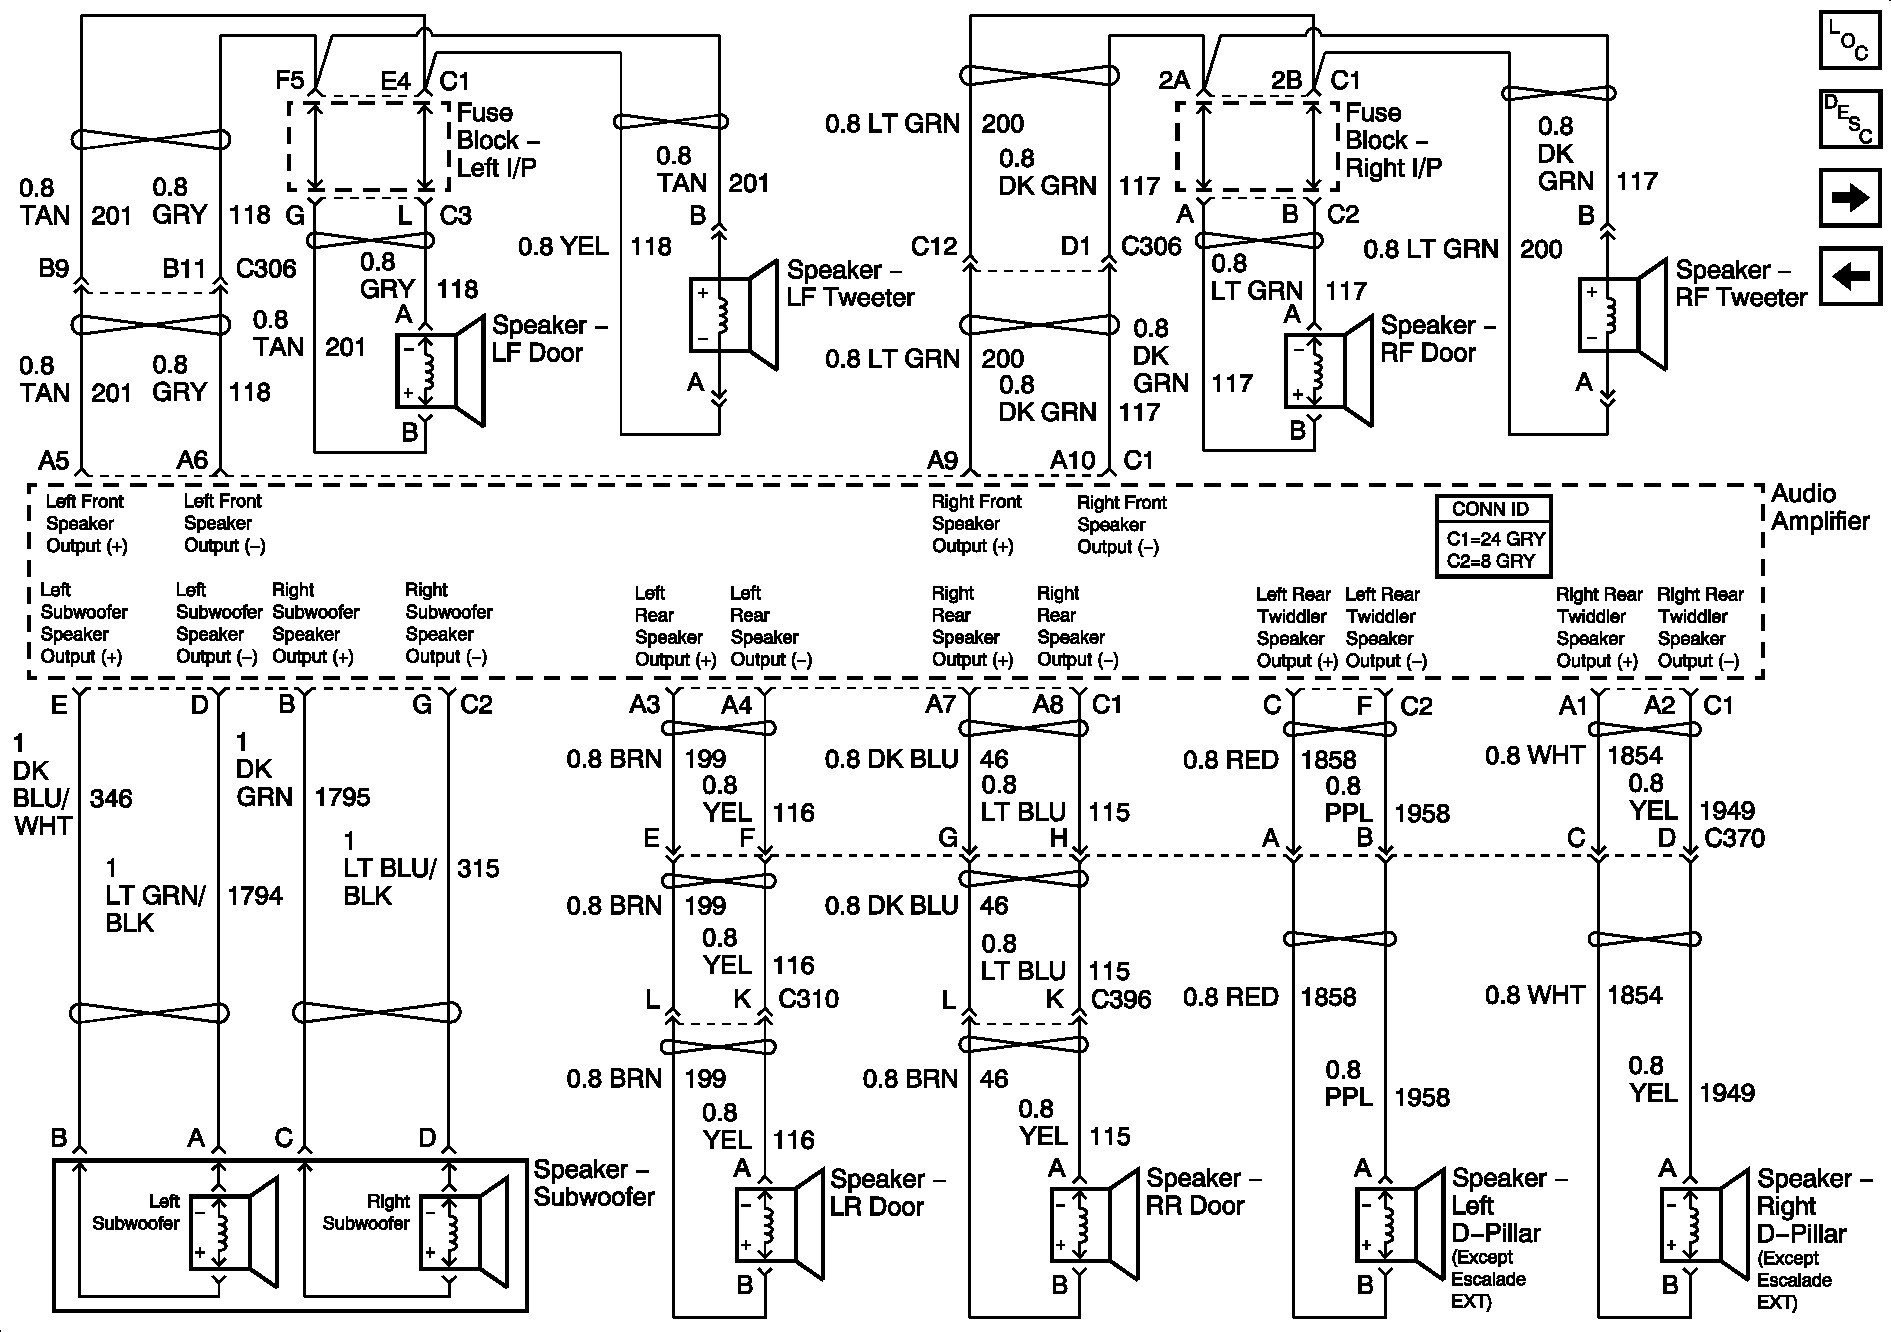 File: 2006 Chevy Ssr Wiring Diagram